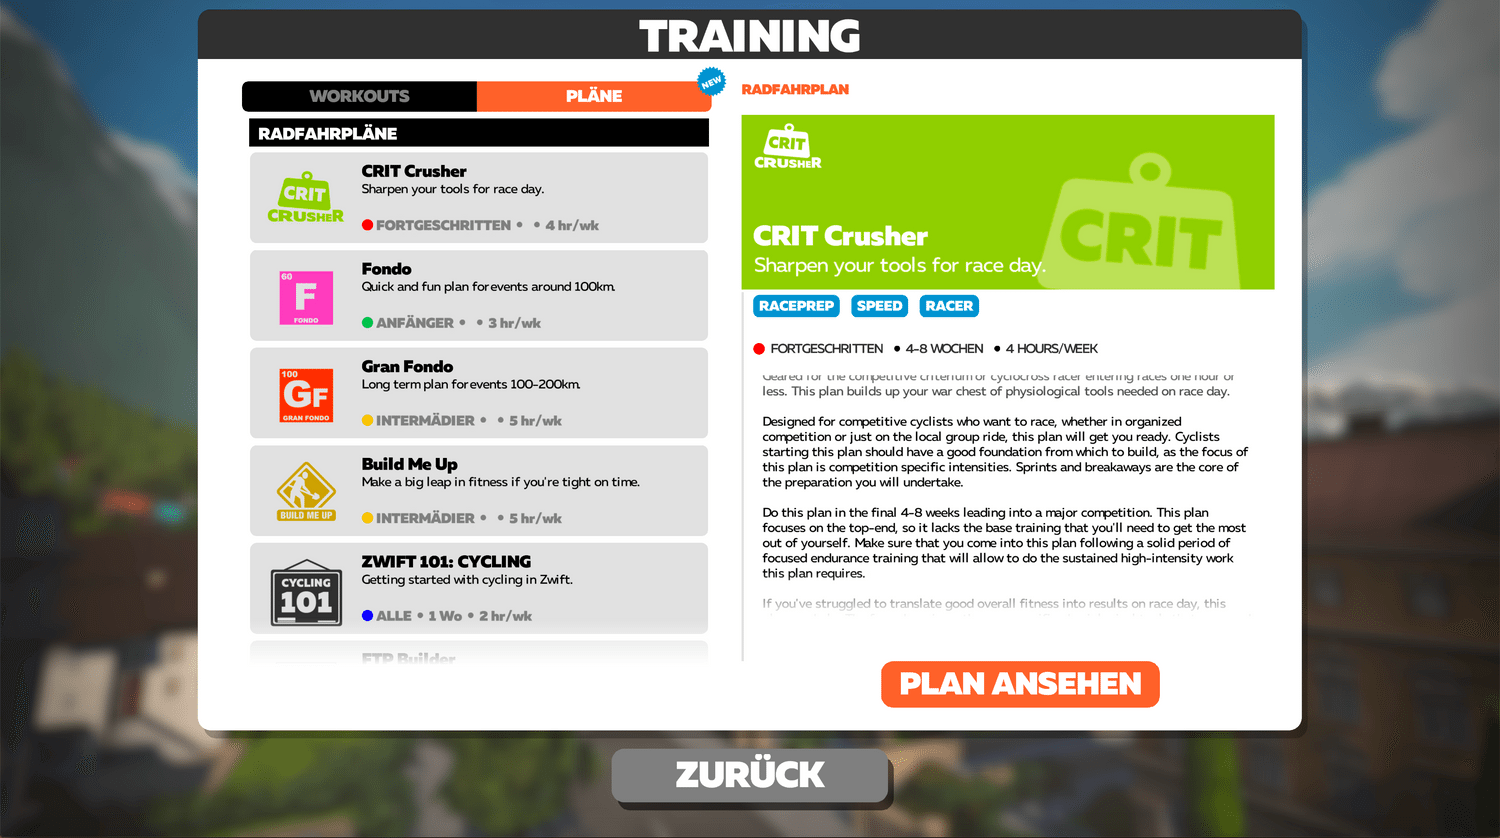 Zwift Trainingspläne